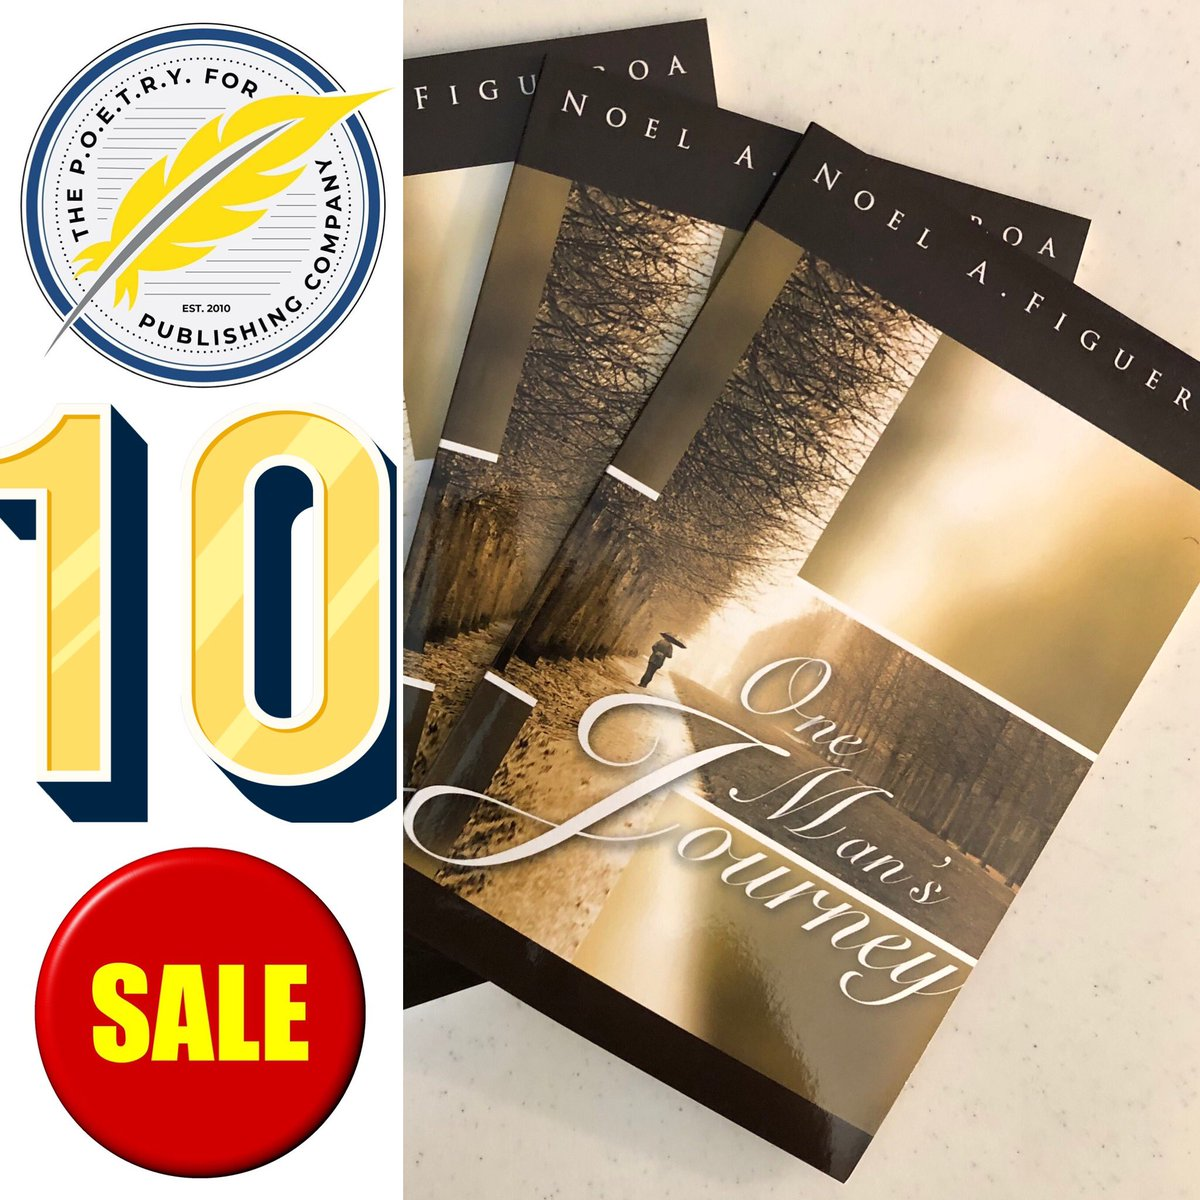 """10th ANNIVERSARY SALE!  From now until November 6th, copies of """"One Man's Journey"""" are on sale for $10. (Includes shipping & handling.) To order, go to:  https://t.co/ODuY4b0bmN  Thank you for your support!  #Announcement #OMJ #AnniversarySale #Poetry #Arts #TheAnointedPen https://t.co/XChr6InyJD"""